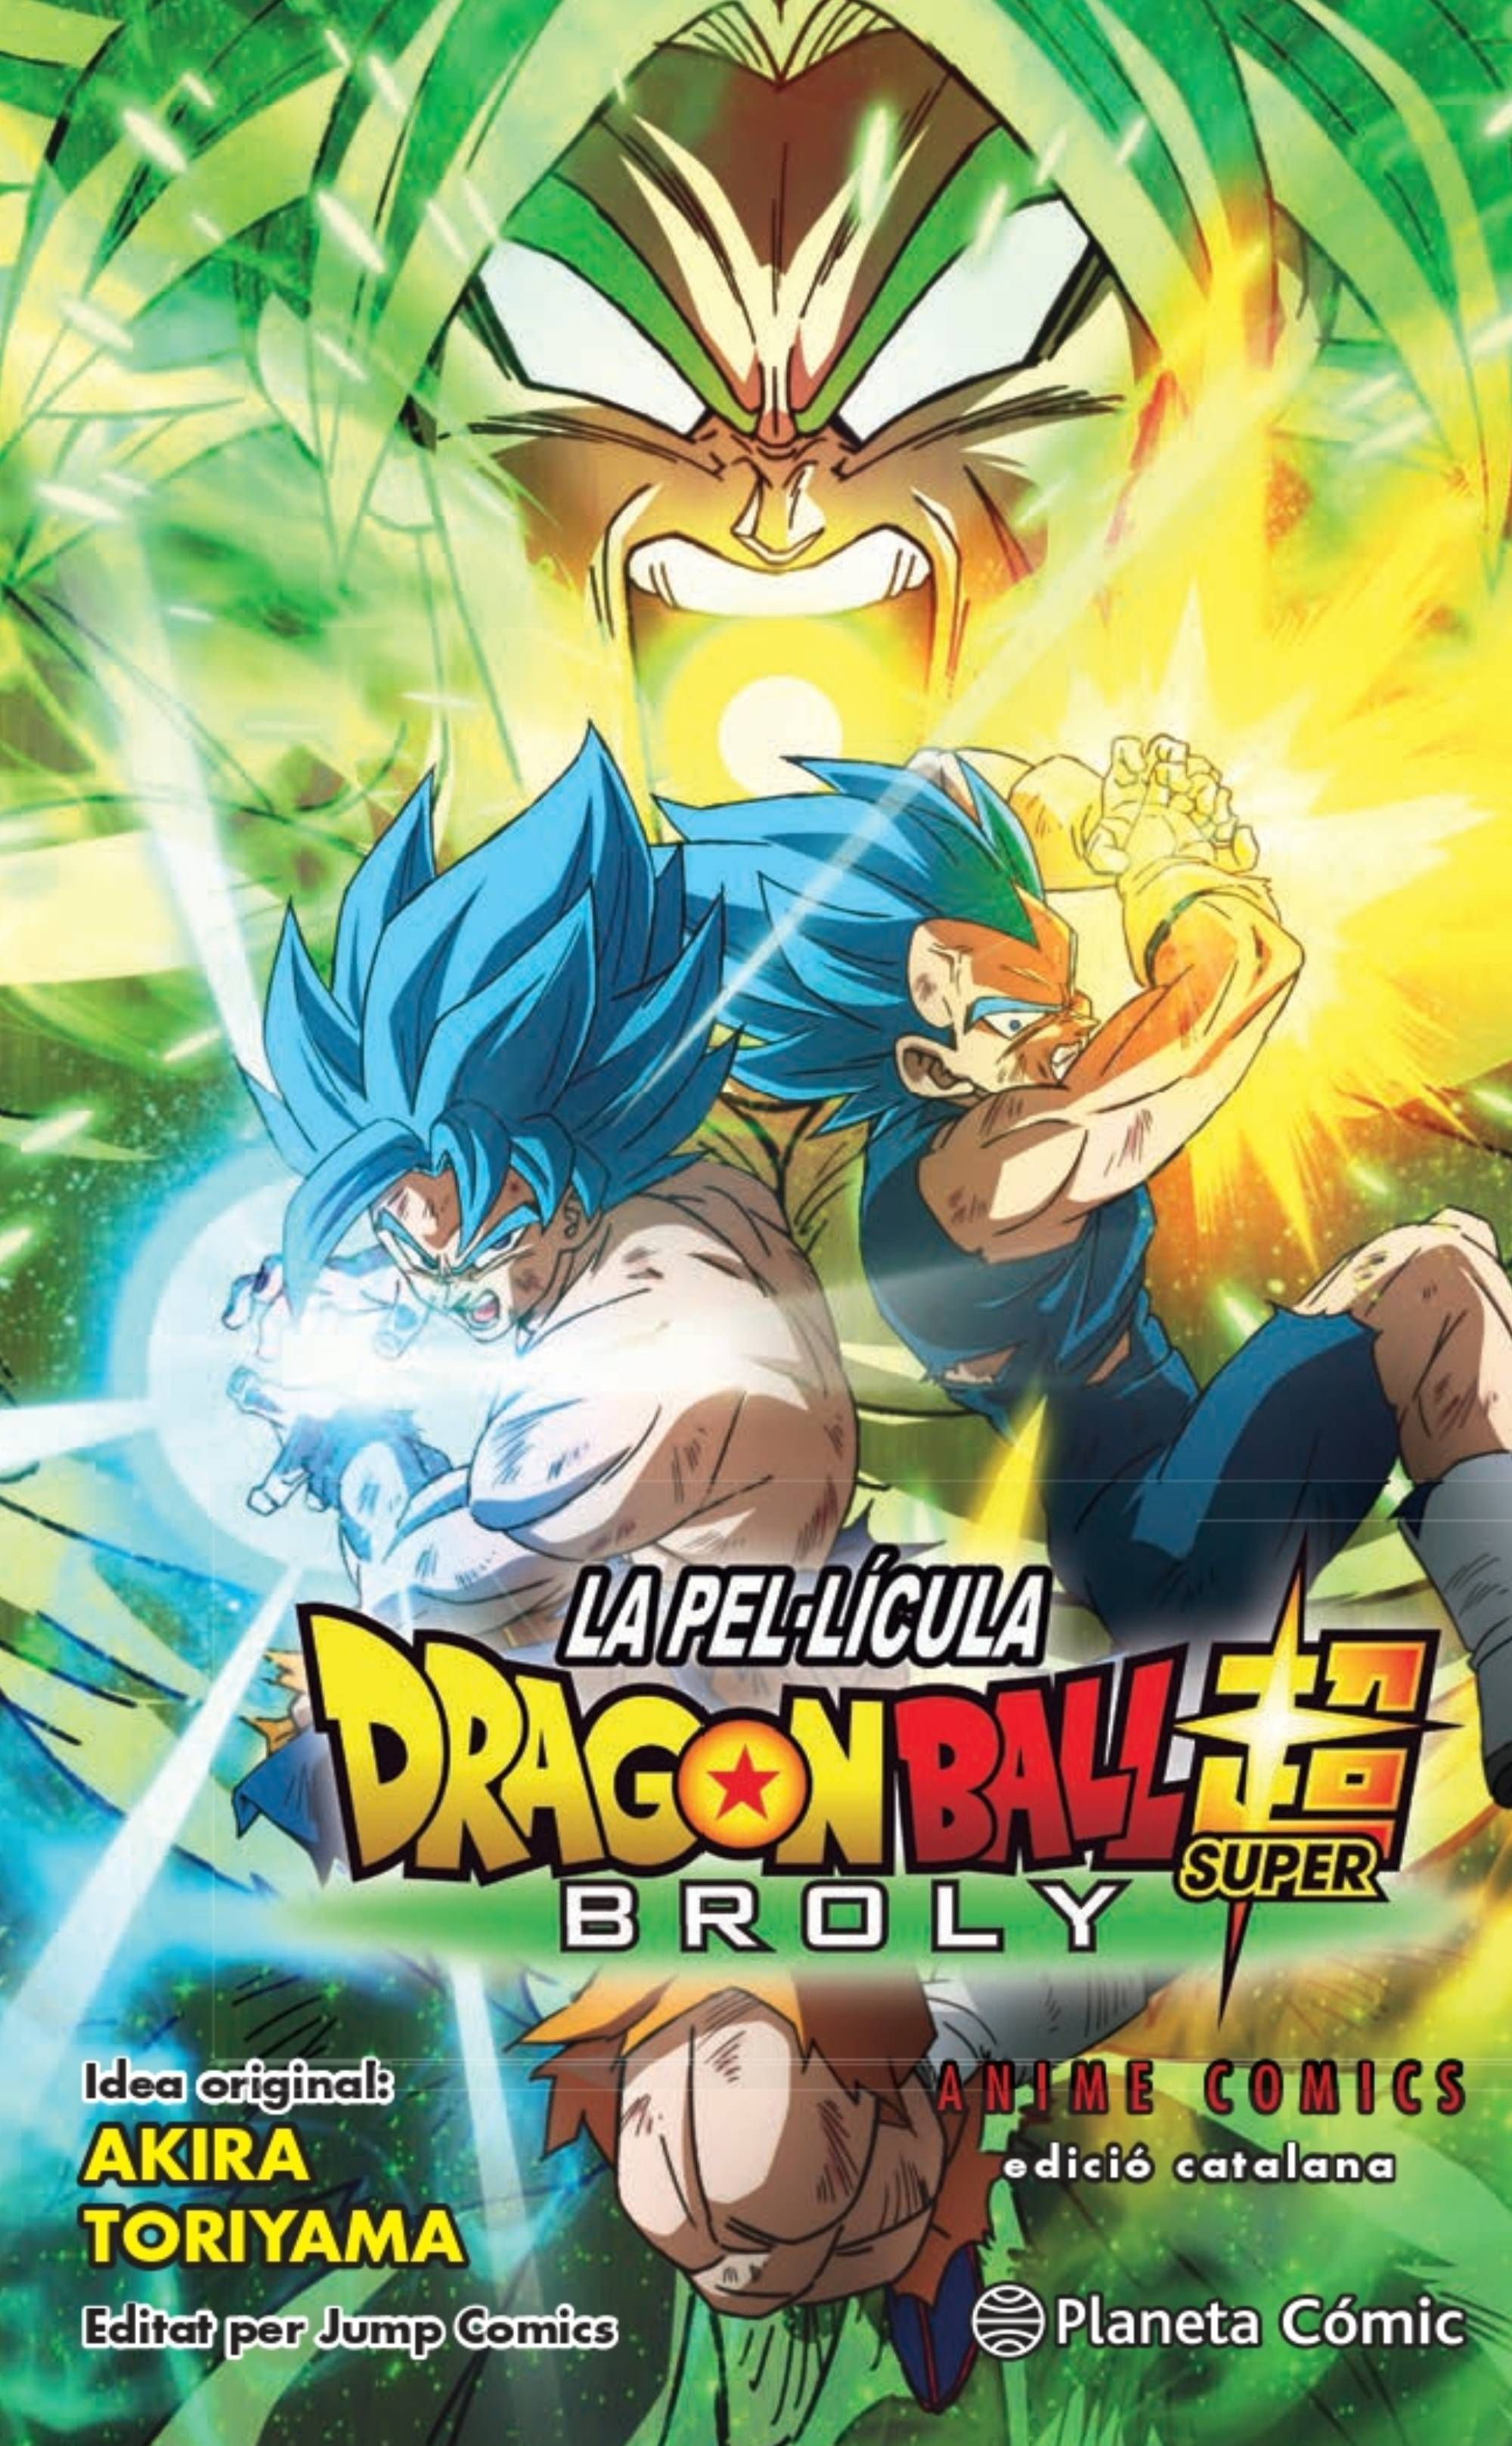 BOLA DE DRAC SUPER BROLY ANIME COMIC